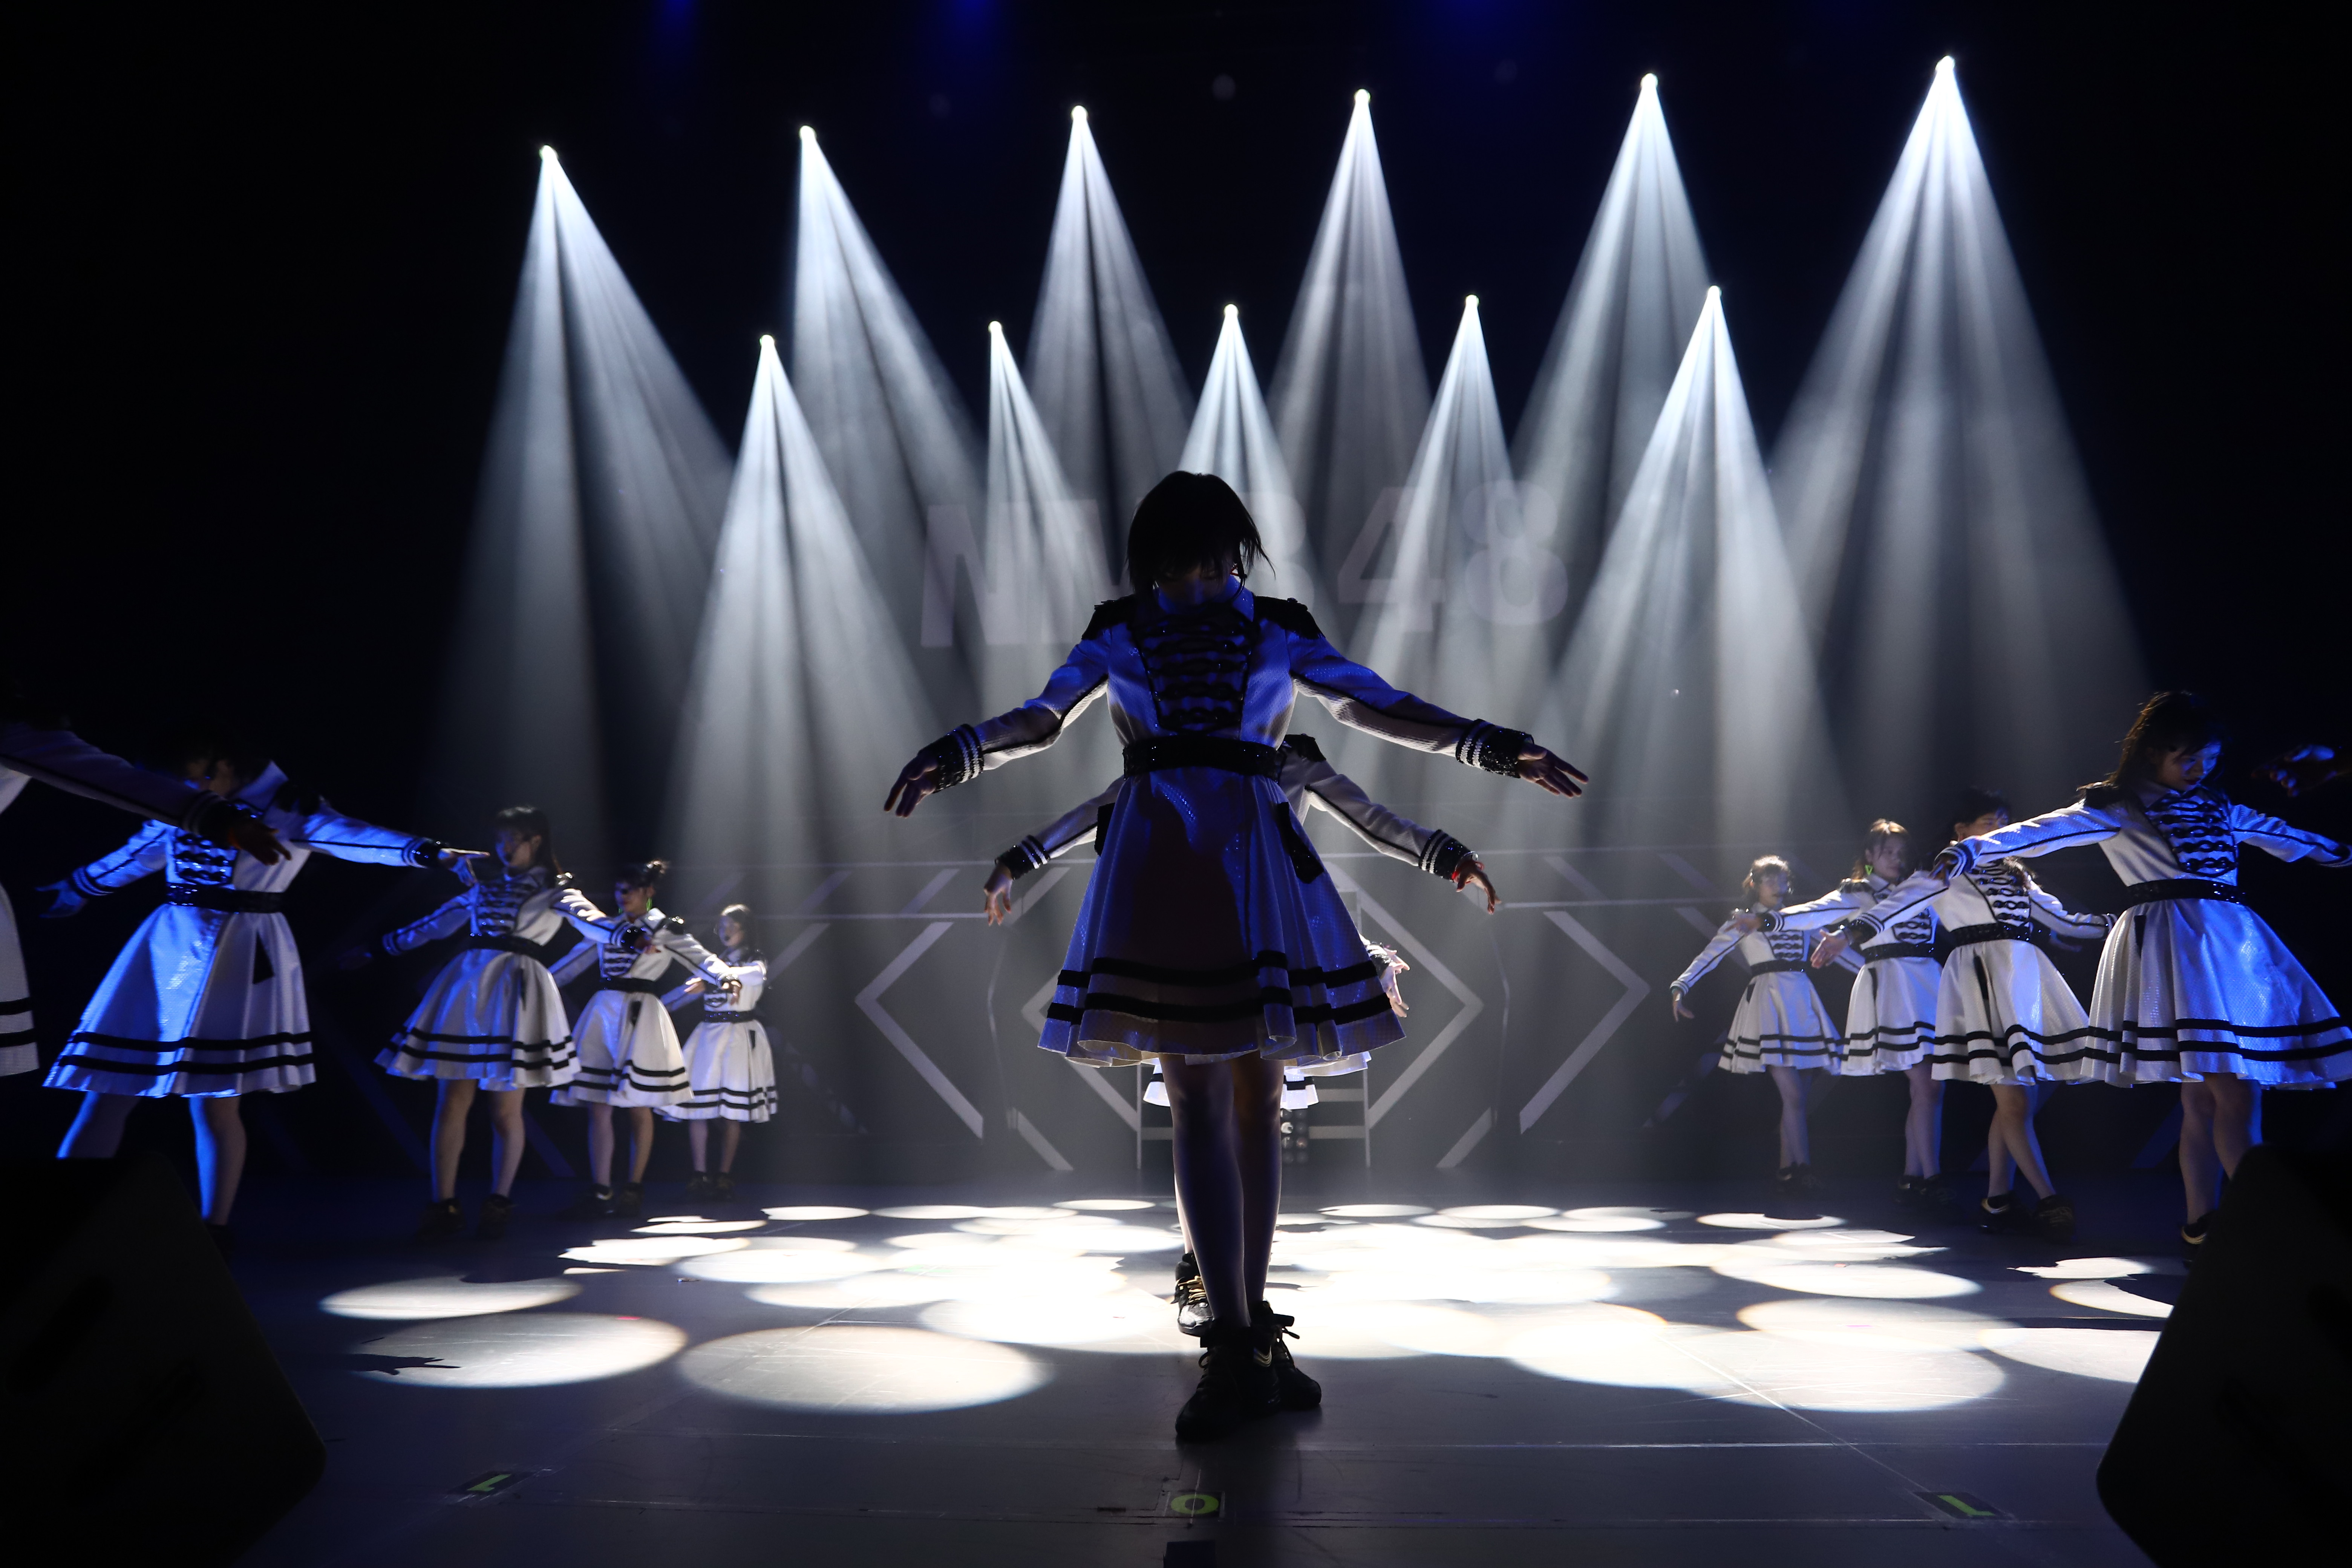 NMB48 LIVE TOUR 2018 in Summer・福岡-014